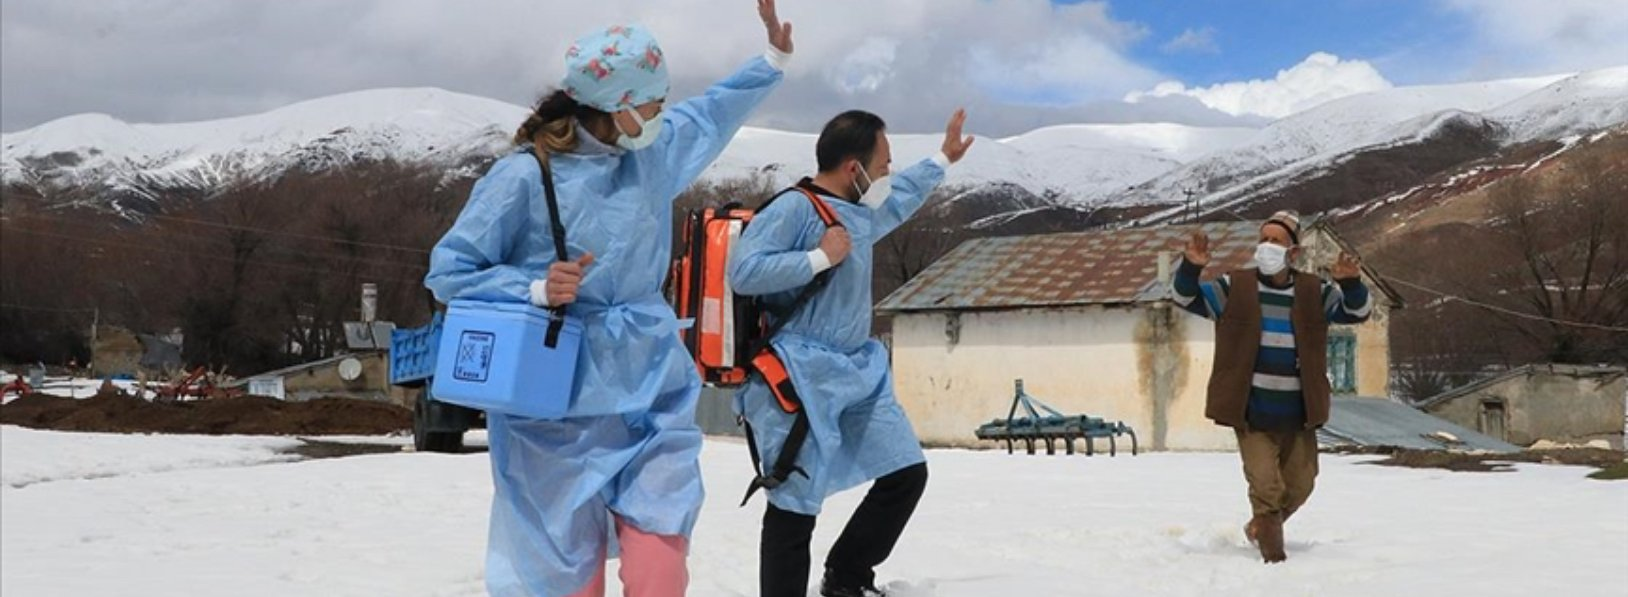 They go over snowy mountains to the feet of the citizen to make Covid-19 vaccine.